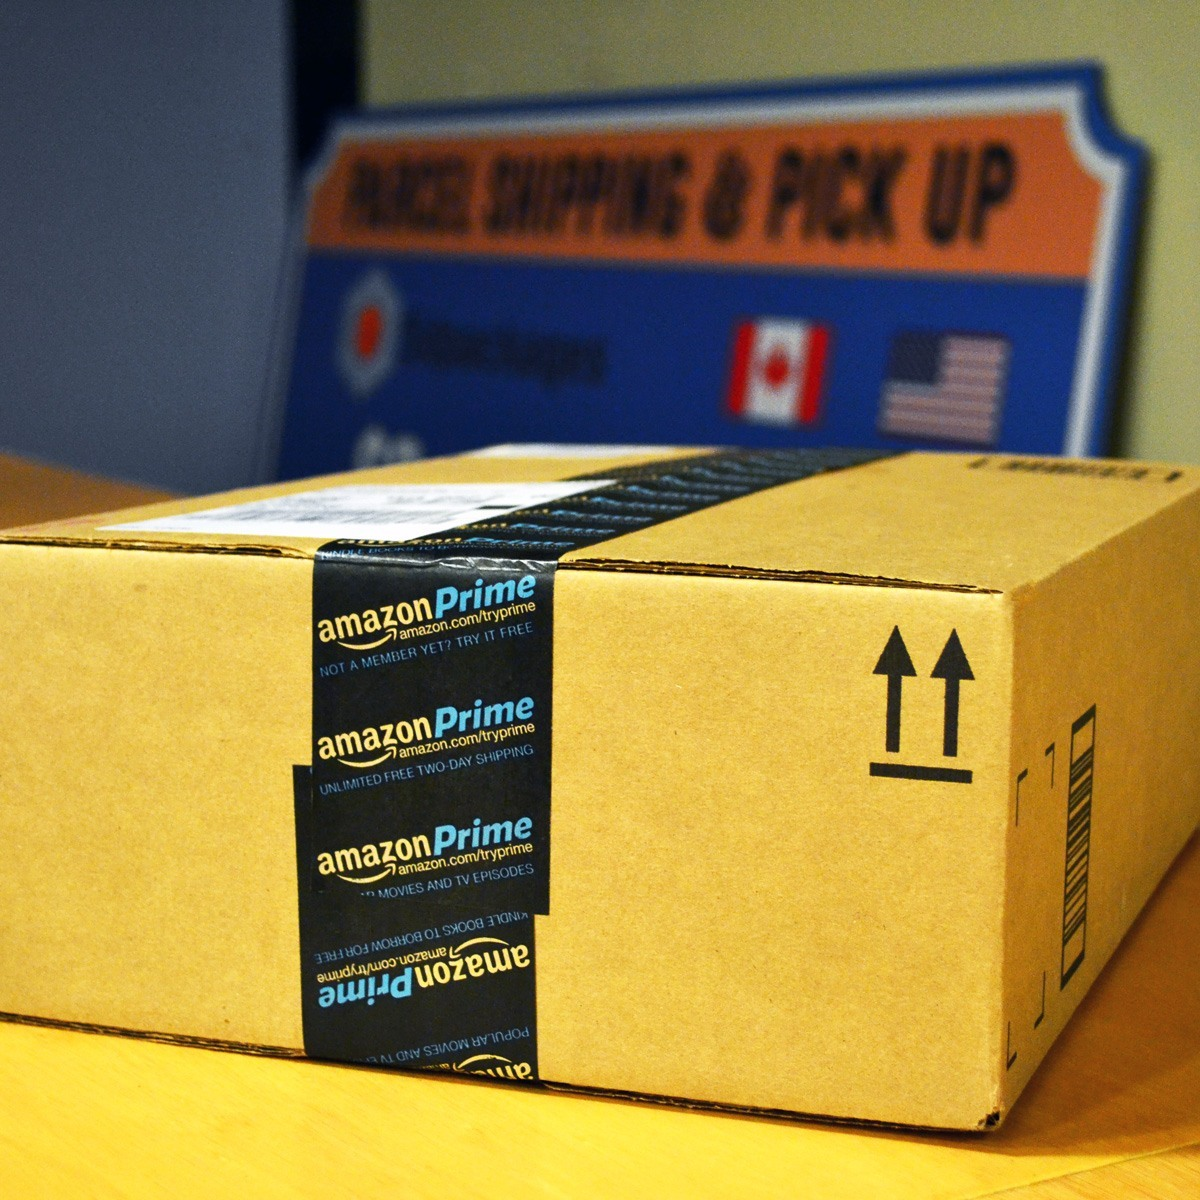 Blaine Parcel Shipping and Receiving | 5dpackages